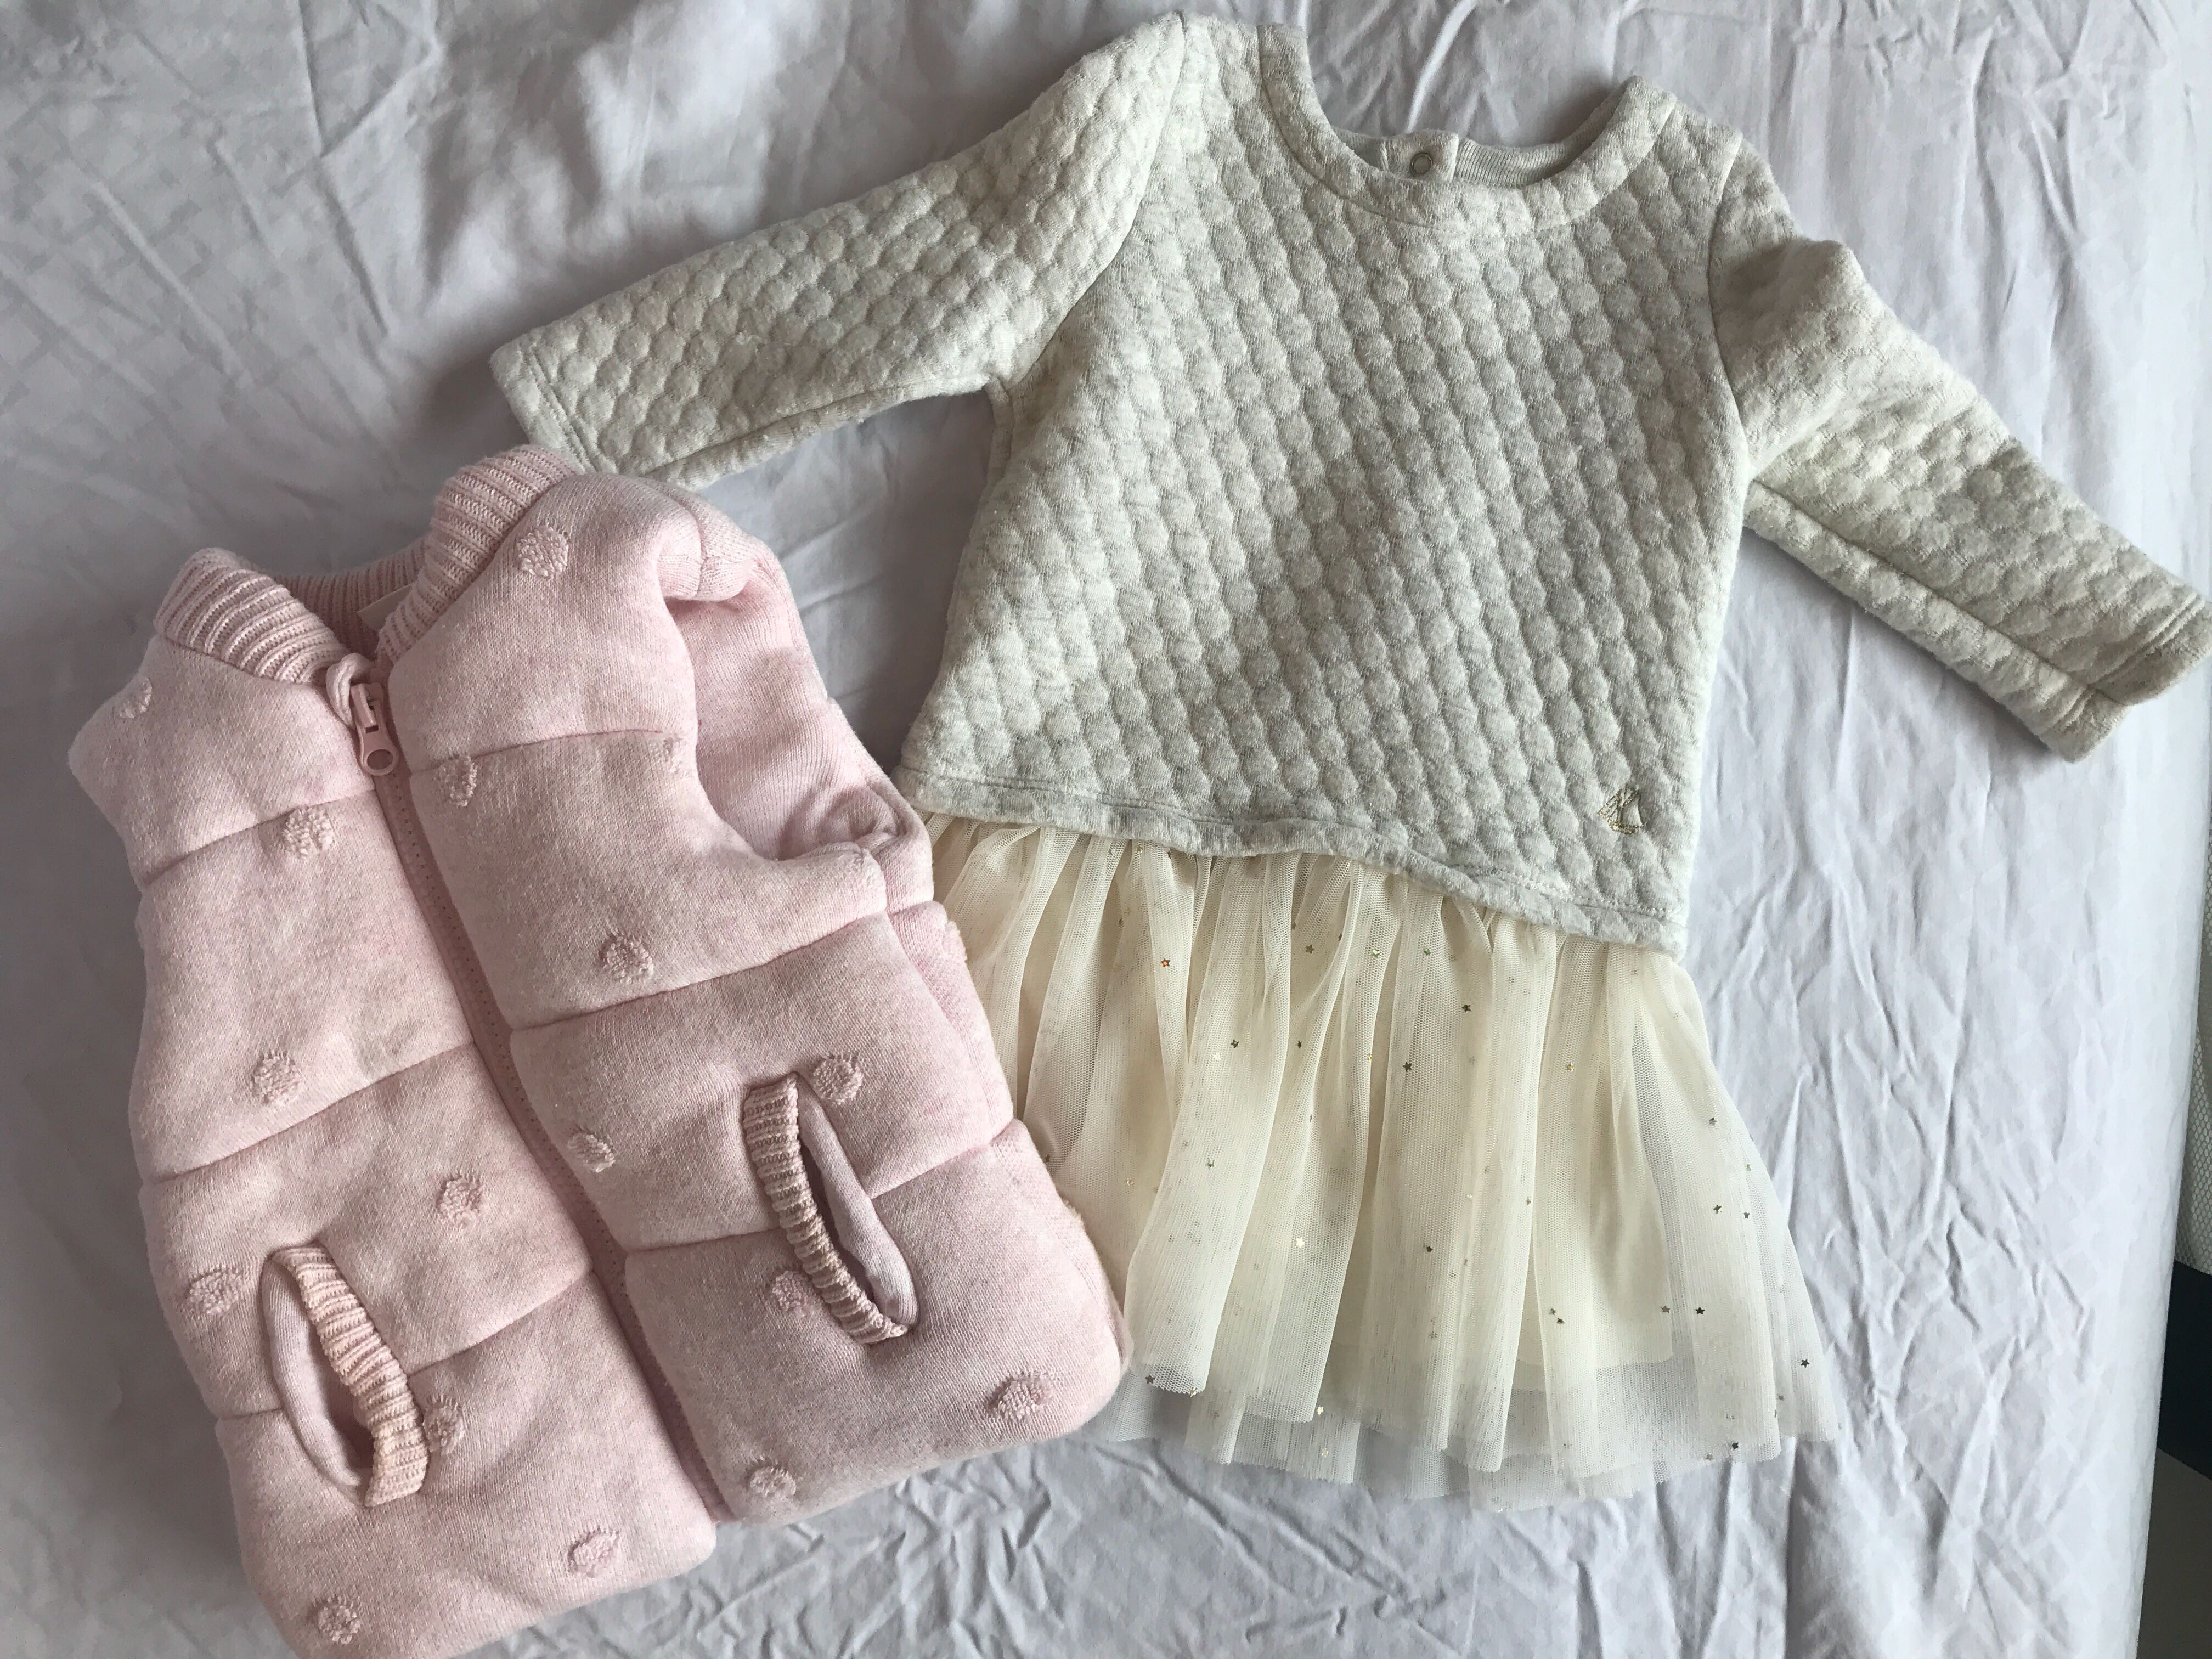 75f4c15c1182b Baby girl winter wear 6-12m, Babies & Kids, Babies Apparel on Carousell